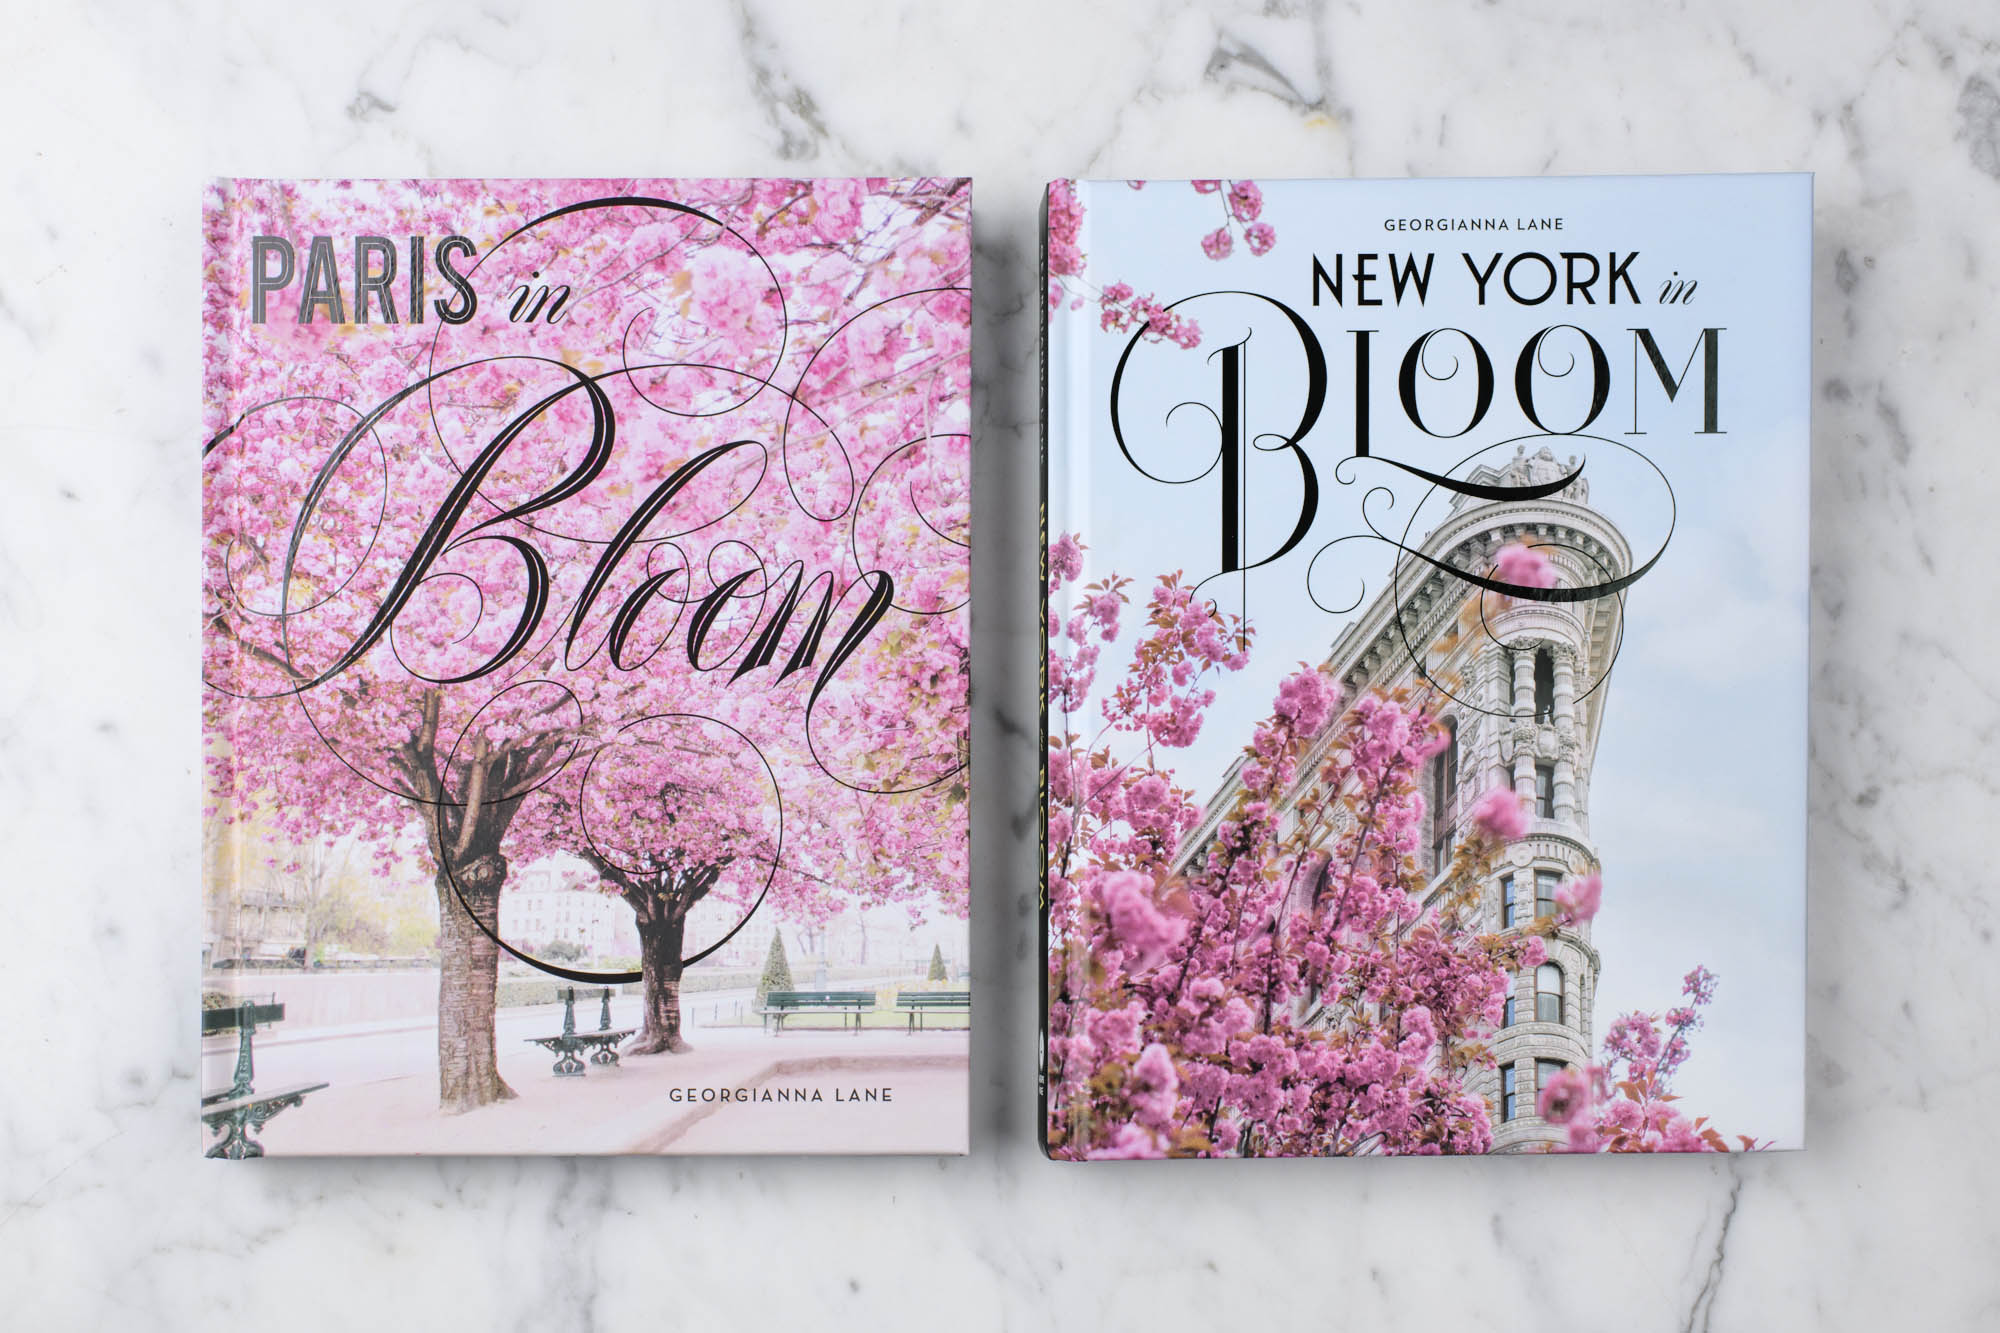 New York in Bloom and Paris in Bloom Georgianna Lane book cover